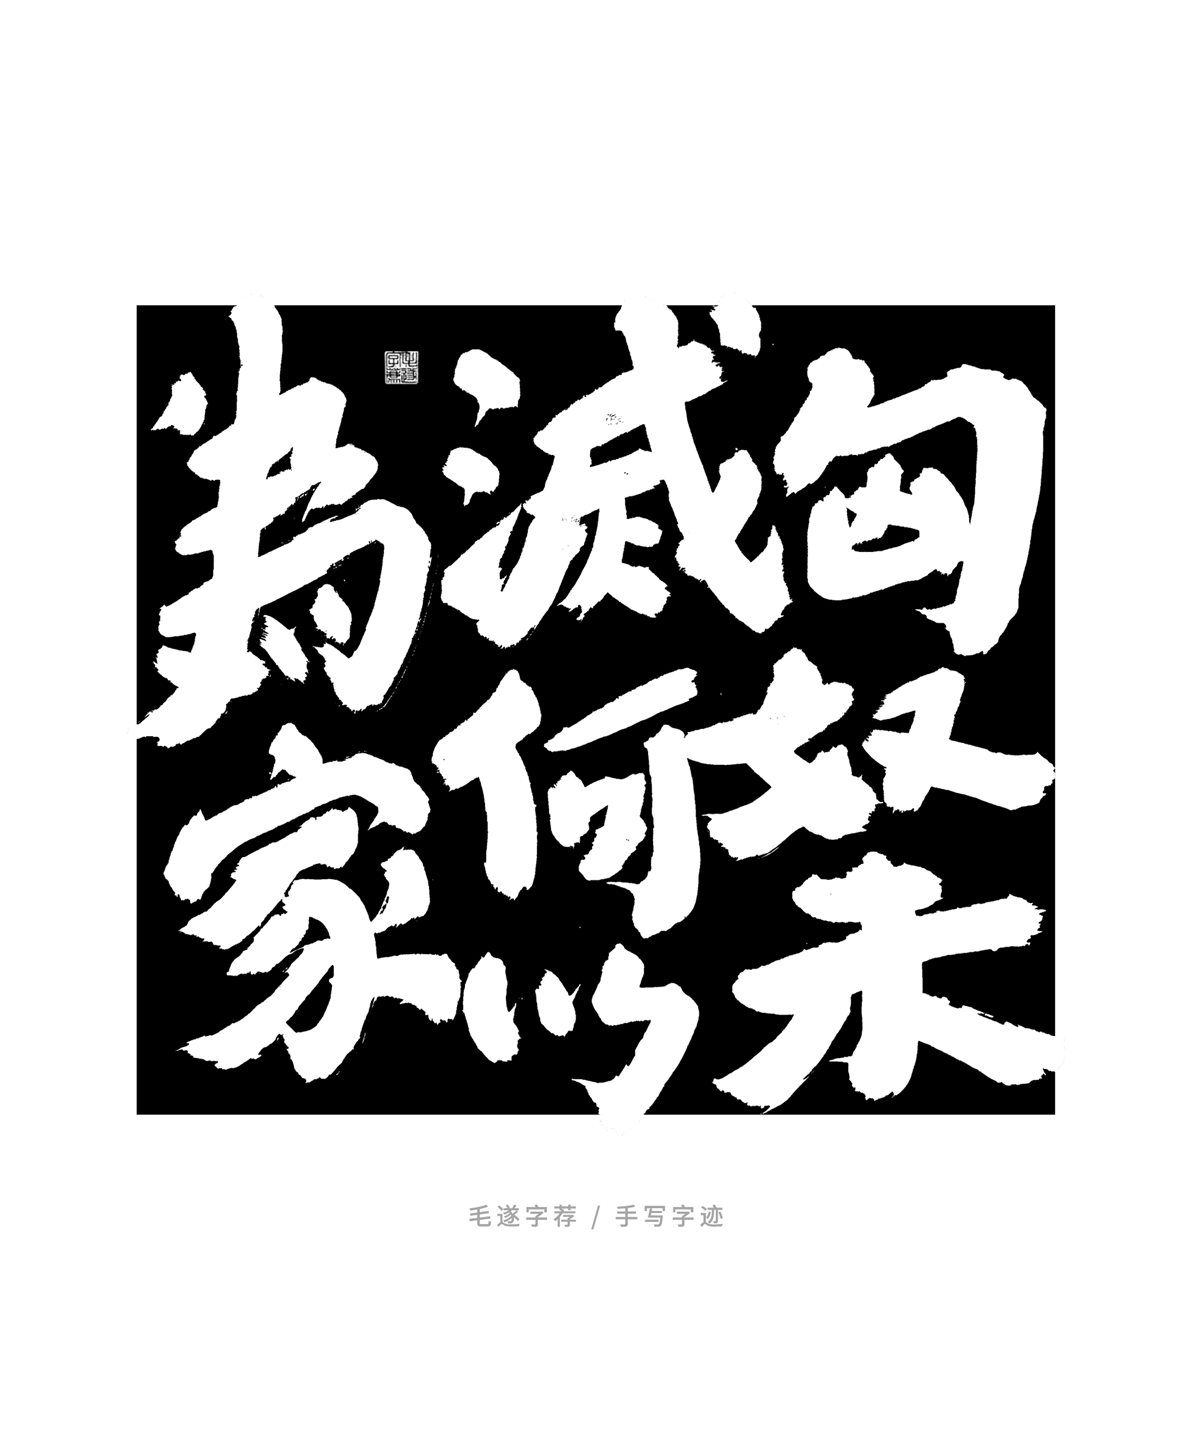 11P Collection of the latest Chinese font design schemes in 2021 #.85